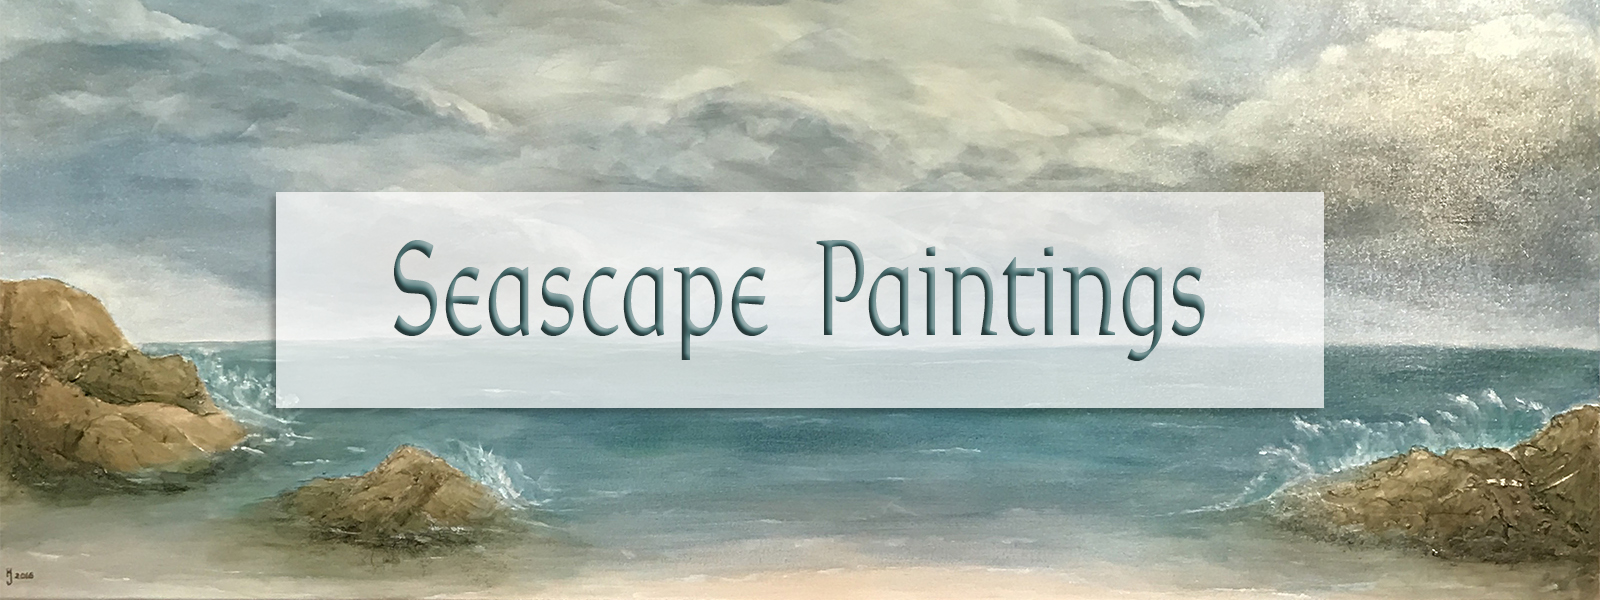 KJ's Art Studio - KJsArtStudio.com | Original Seascape Paintings by Fine Artist, KJ Burk.